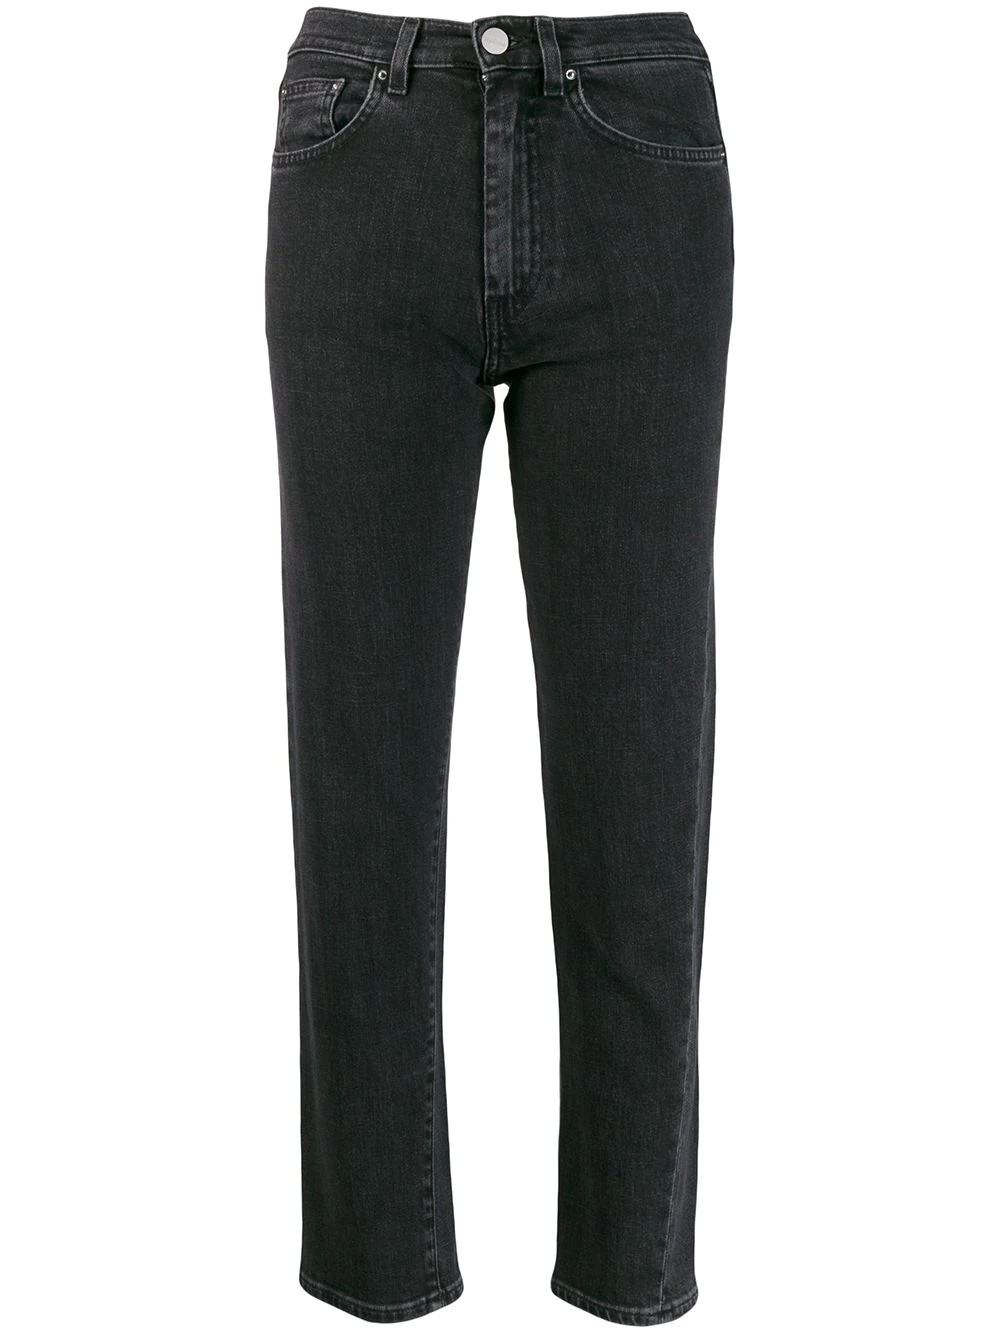 MID WAIST ORIGINAL DENIM WITH CROPPED LENGHT/TWISTED SEAM